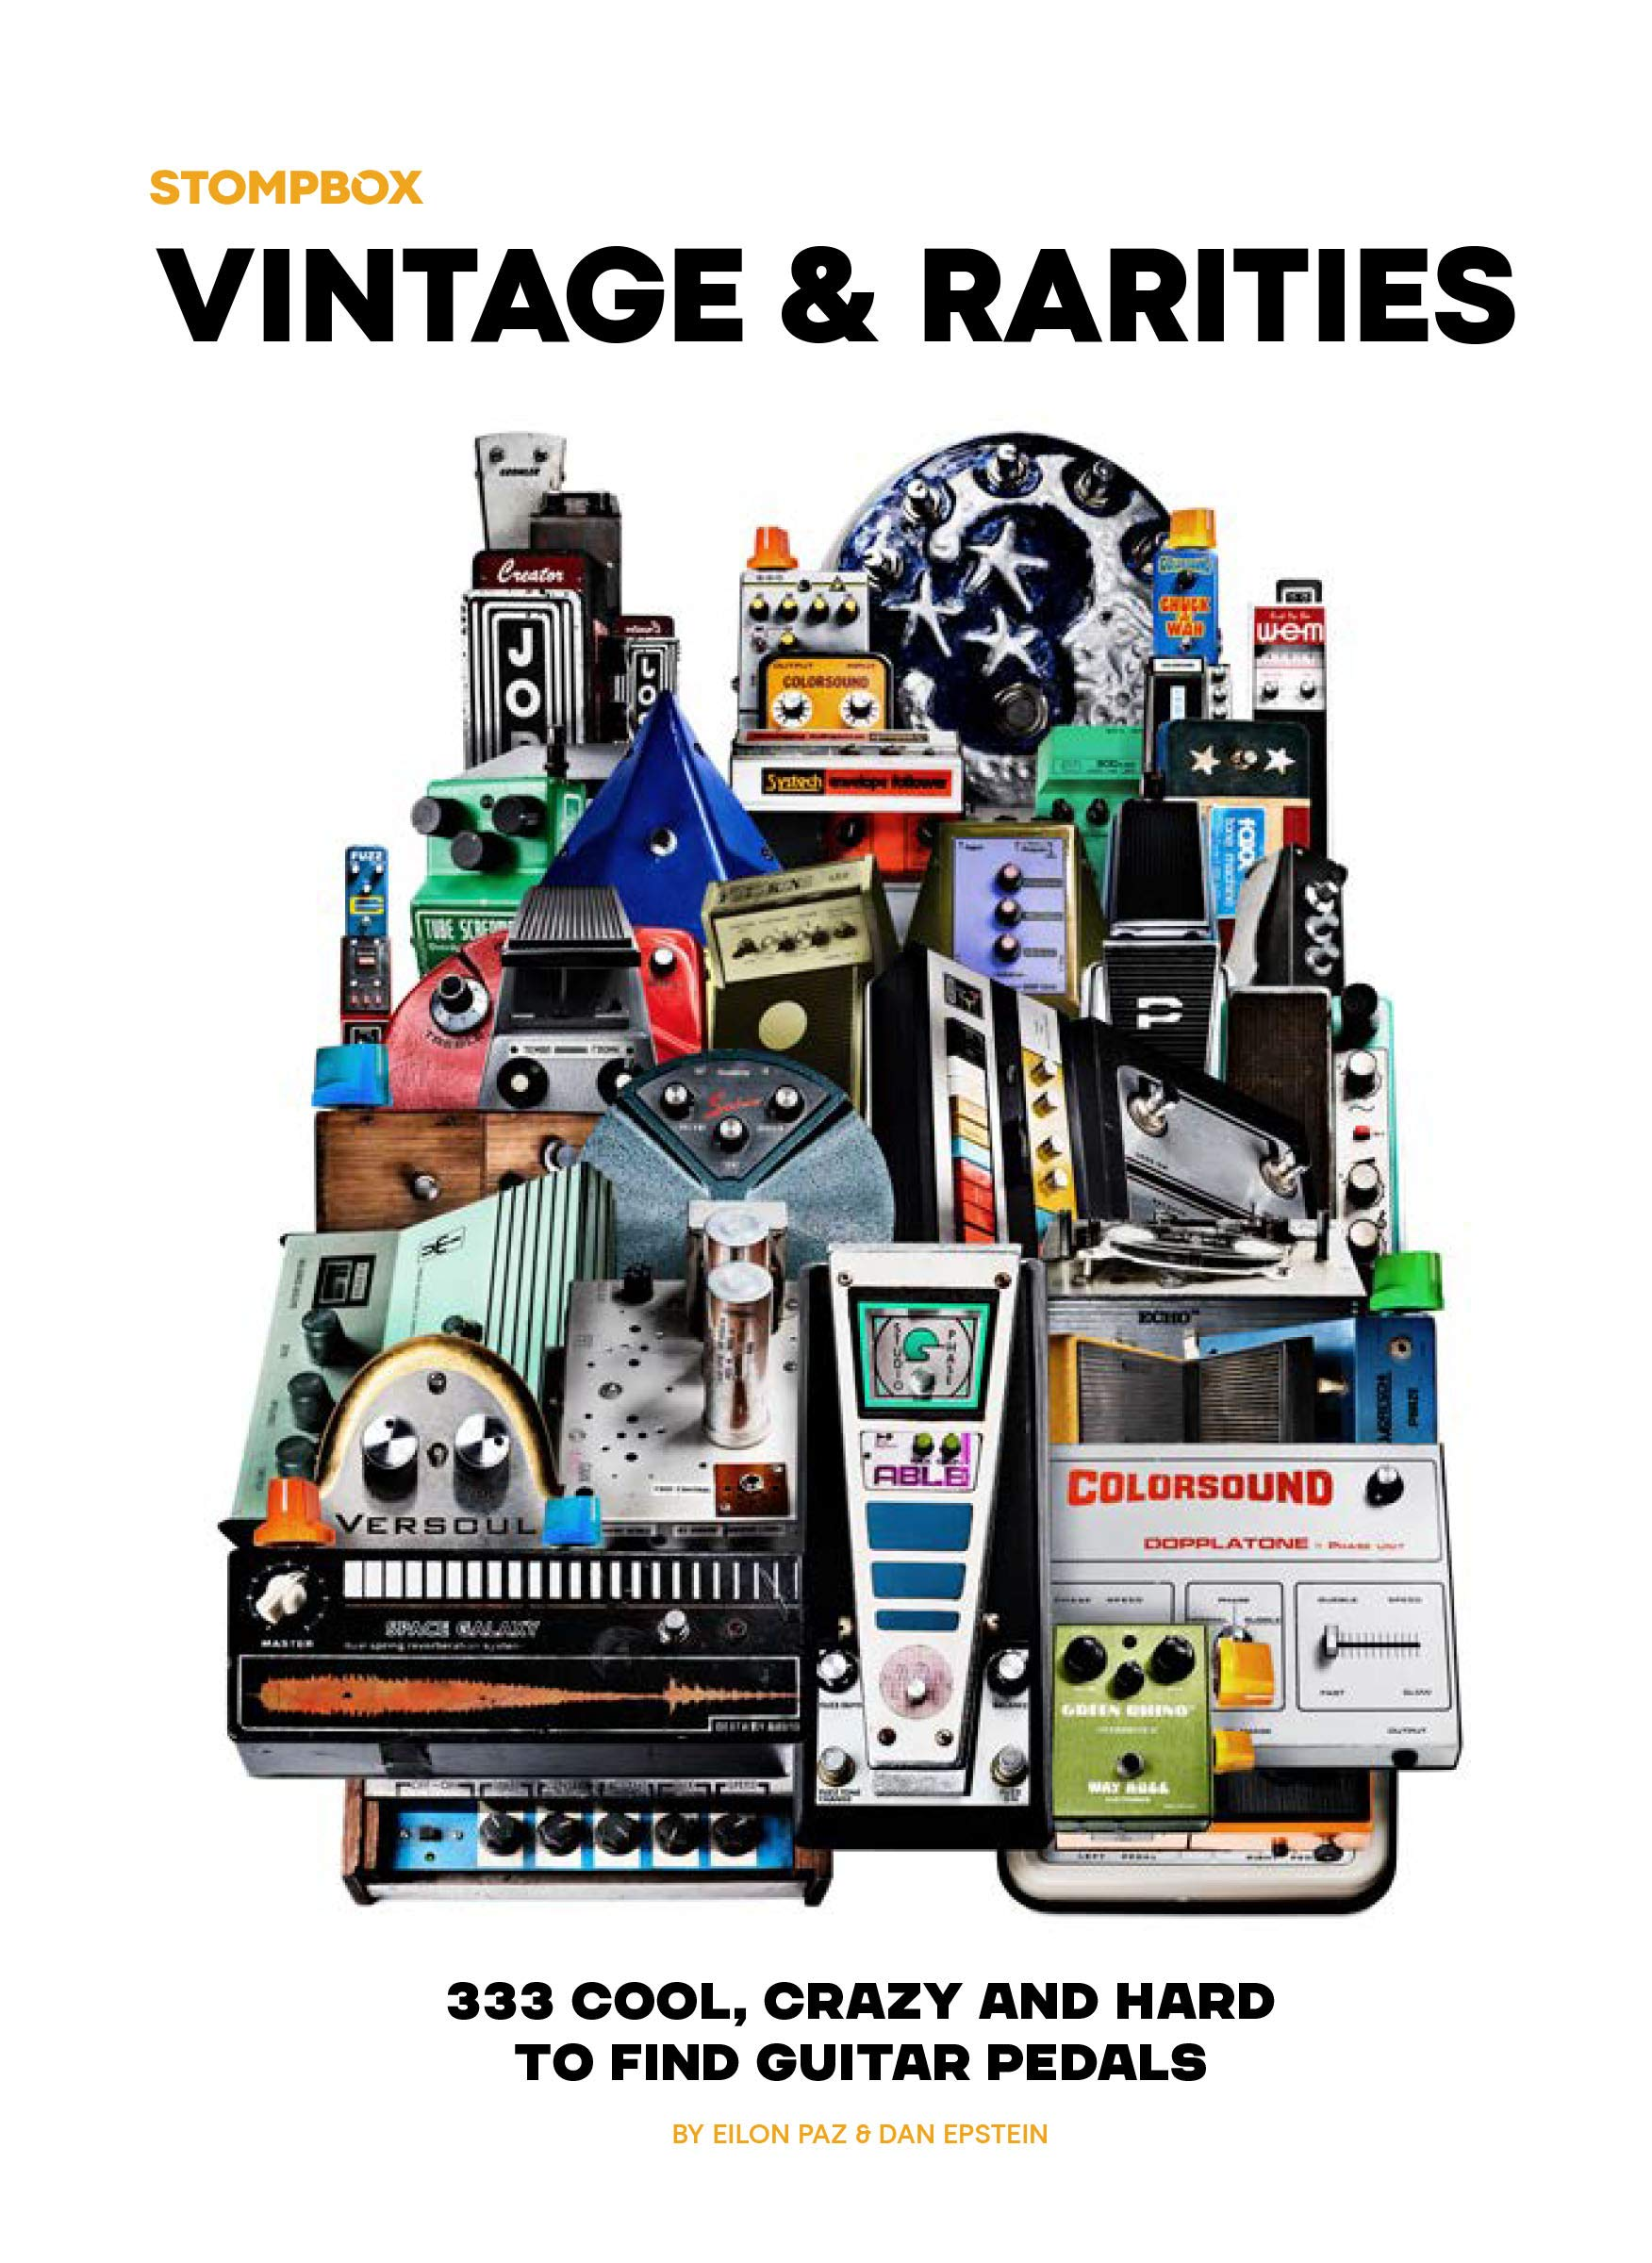 Vintage & Rarities: 333 Cool, Crazy and Hard to Find Guitar Pedals [Limited 1st Edition]